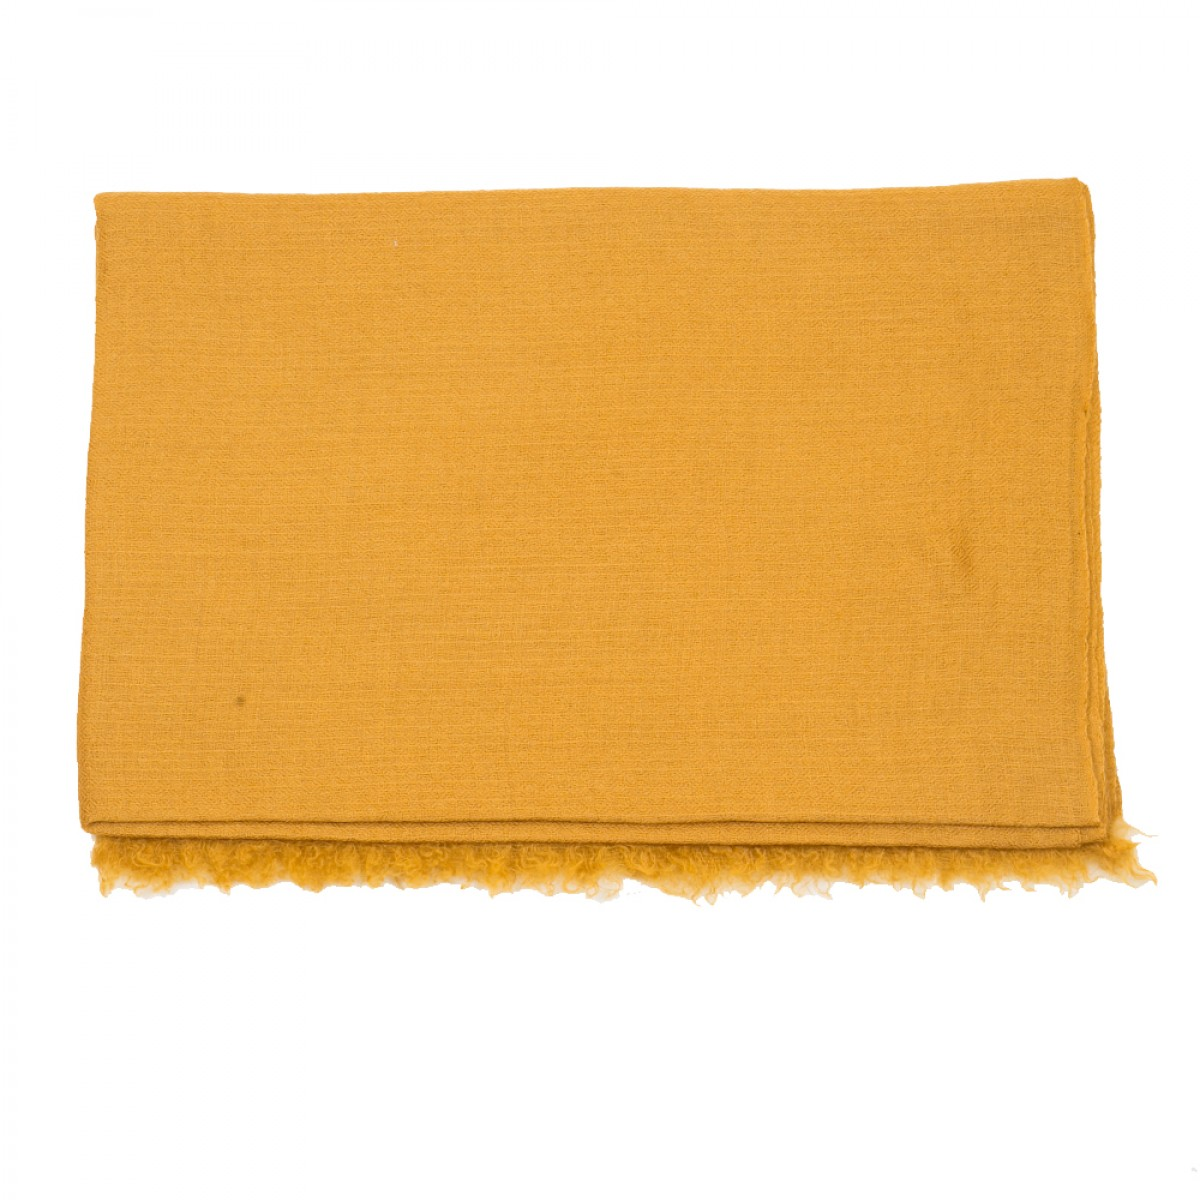 Plain Pashmina Stole - Ochre Brown